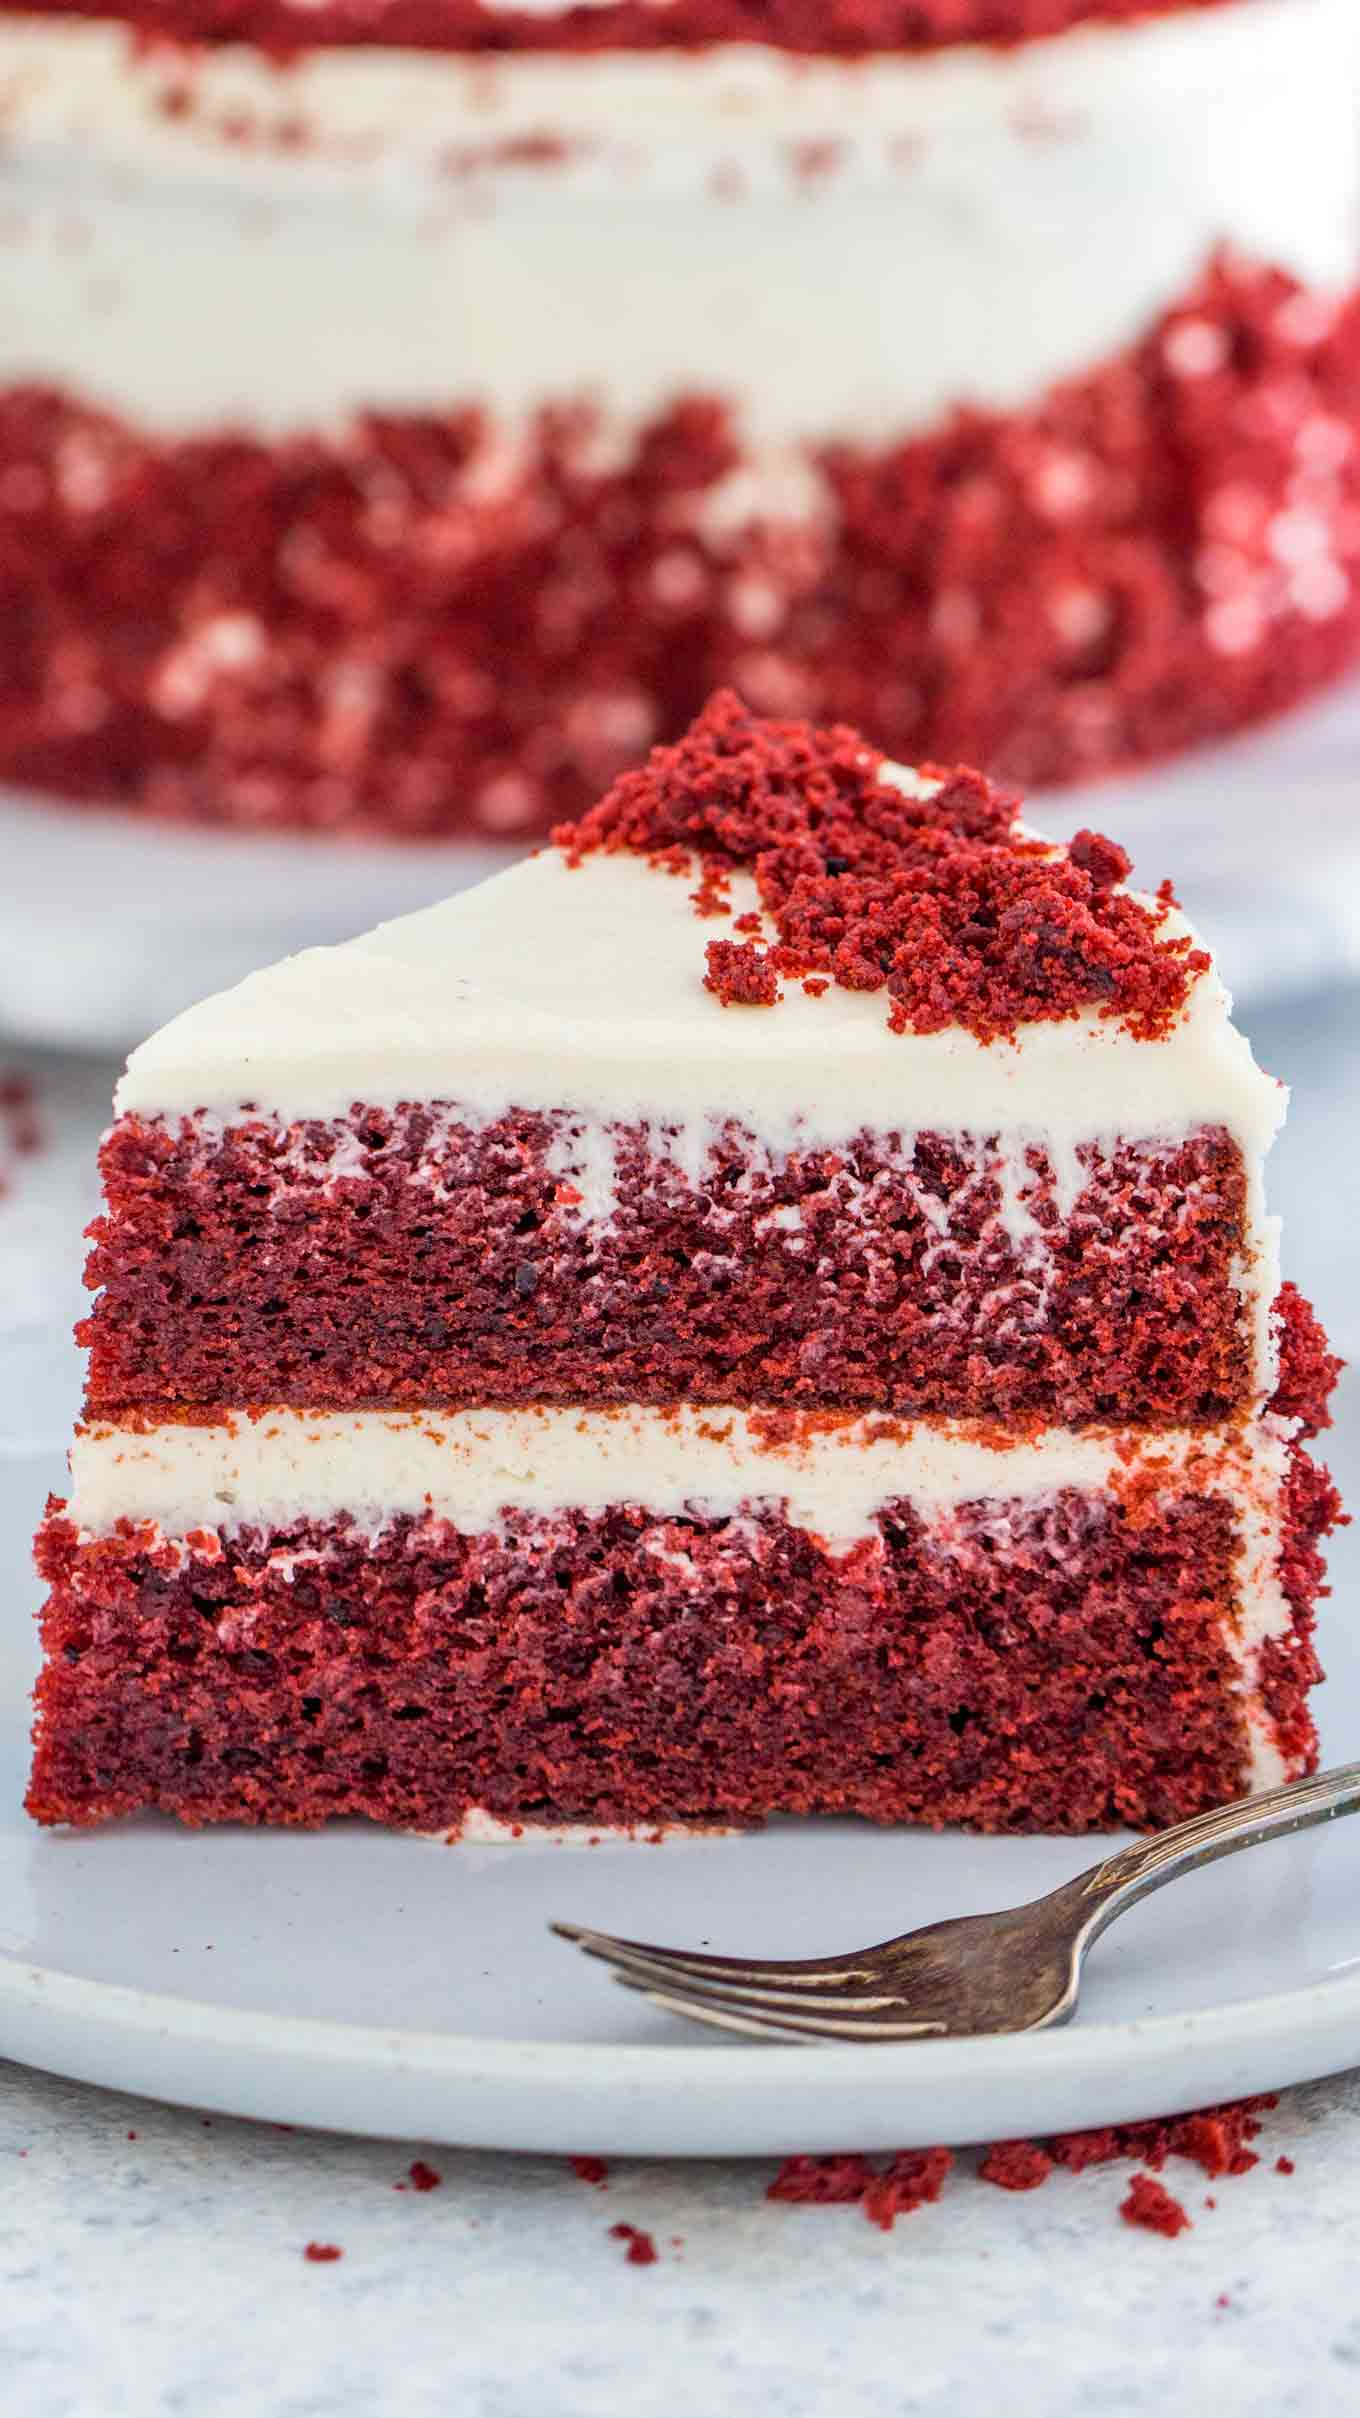 Red Velvet Cake Video Sweet And Savory Meals